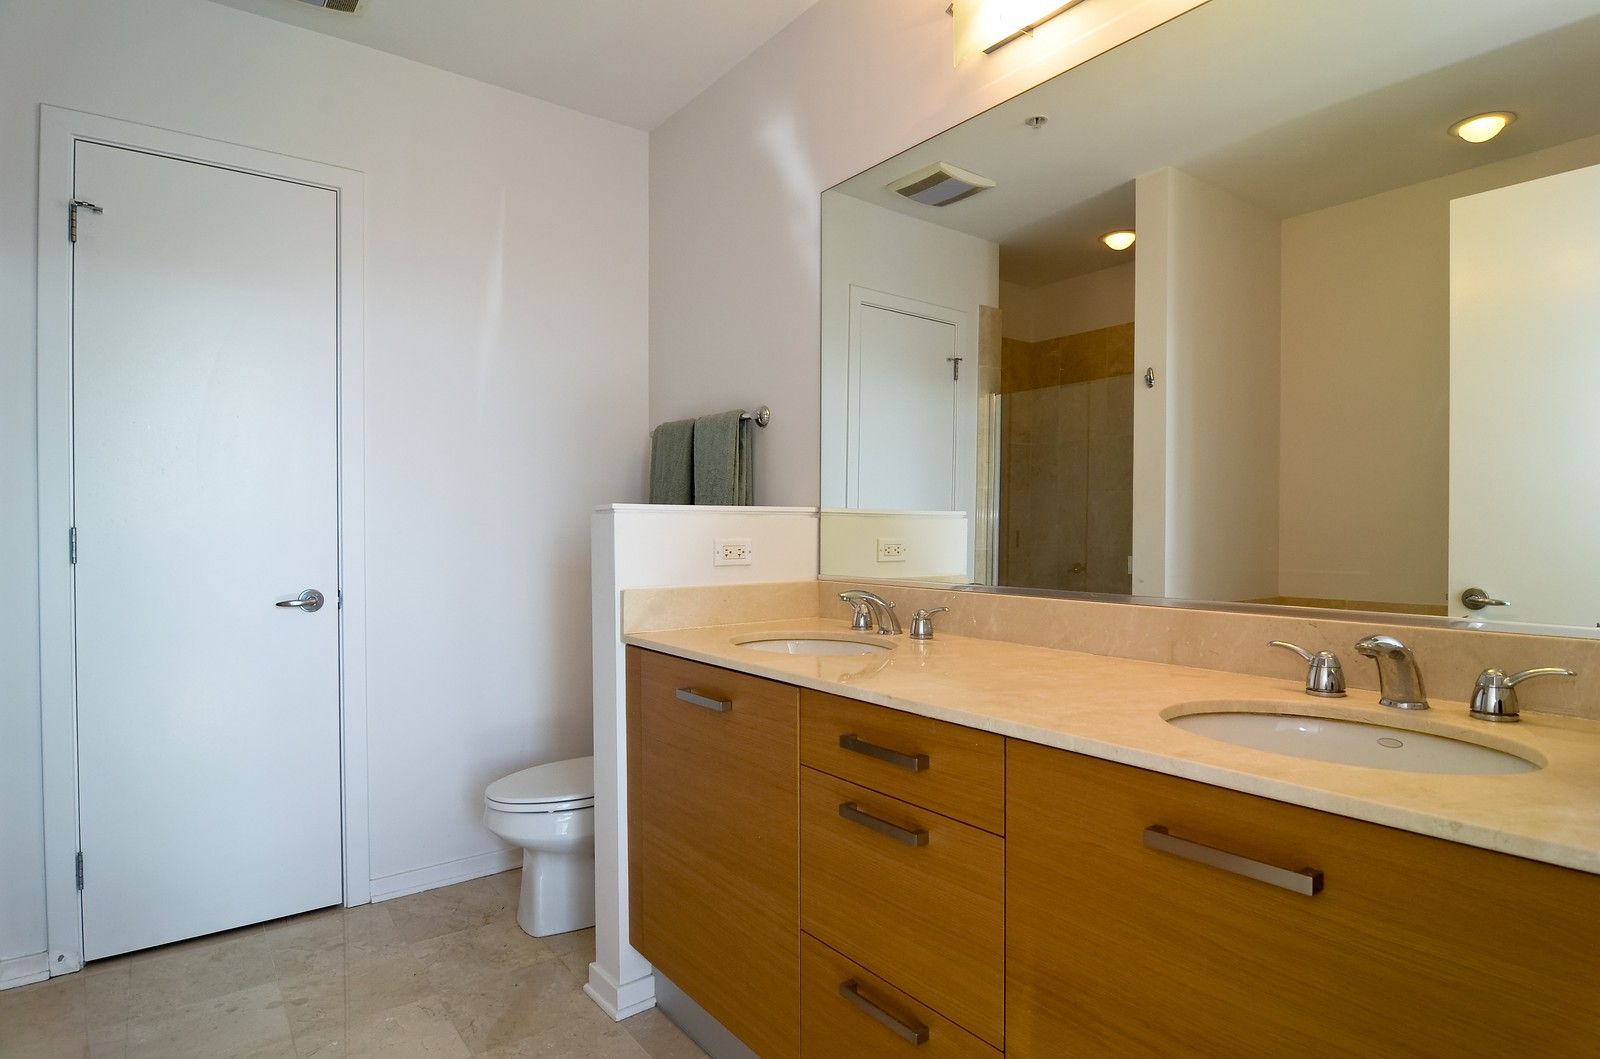 Real Estate Photography - 500 W Superior, Chicago, IL, 60654 - Master Bathroom